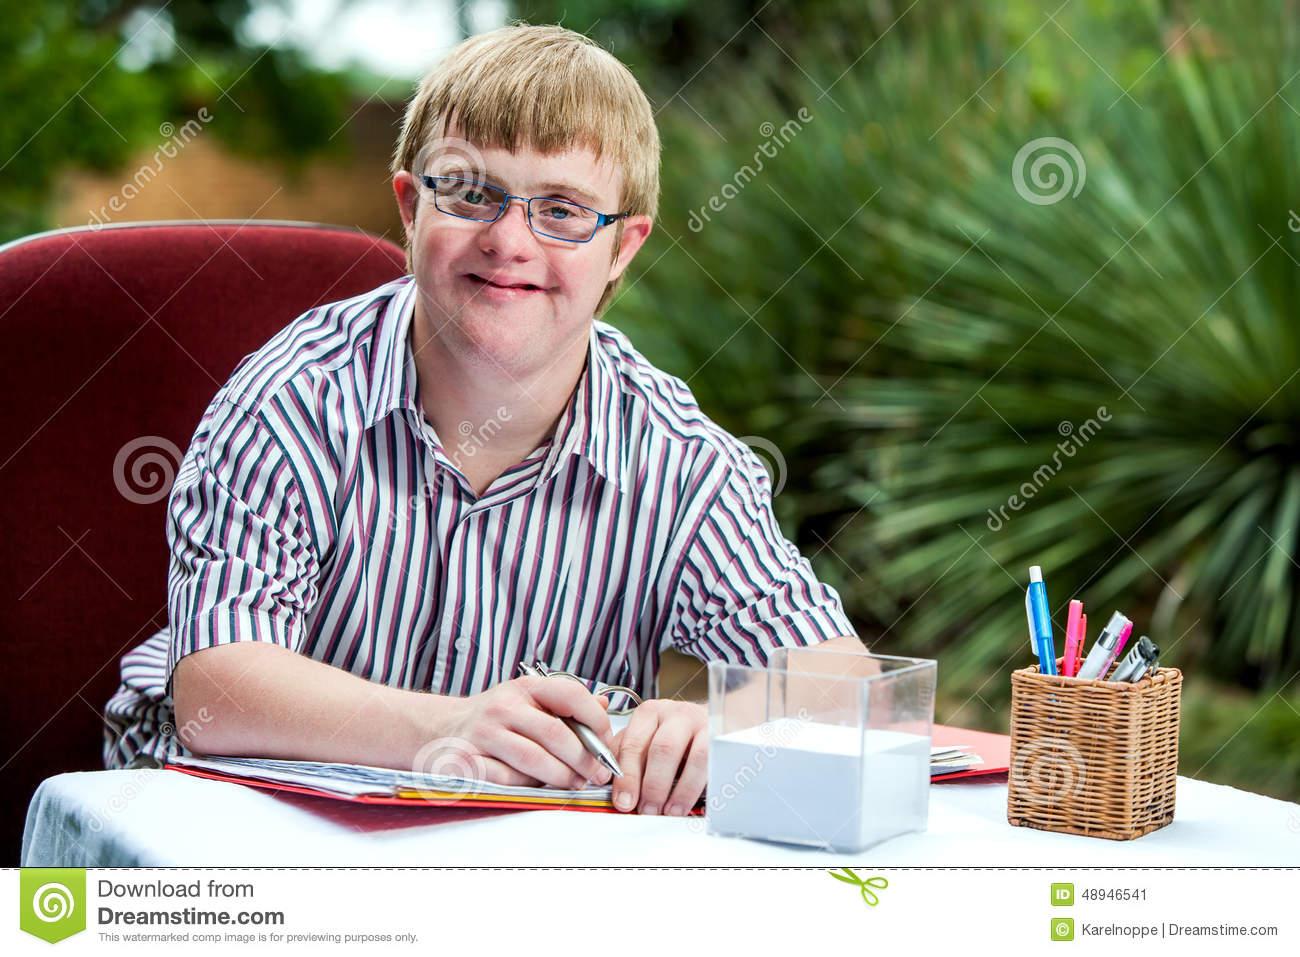 Handicapped Boy At Desk In Garden Stock Photo Image 48946541